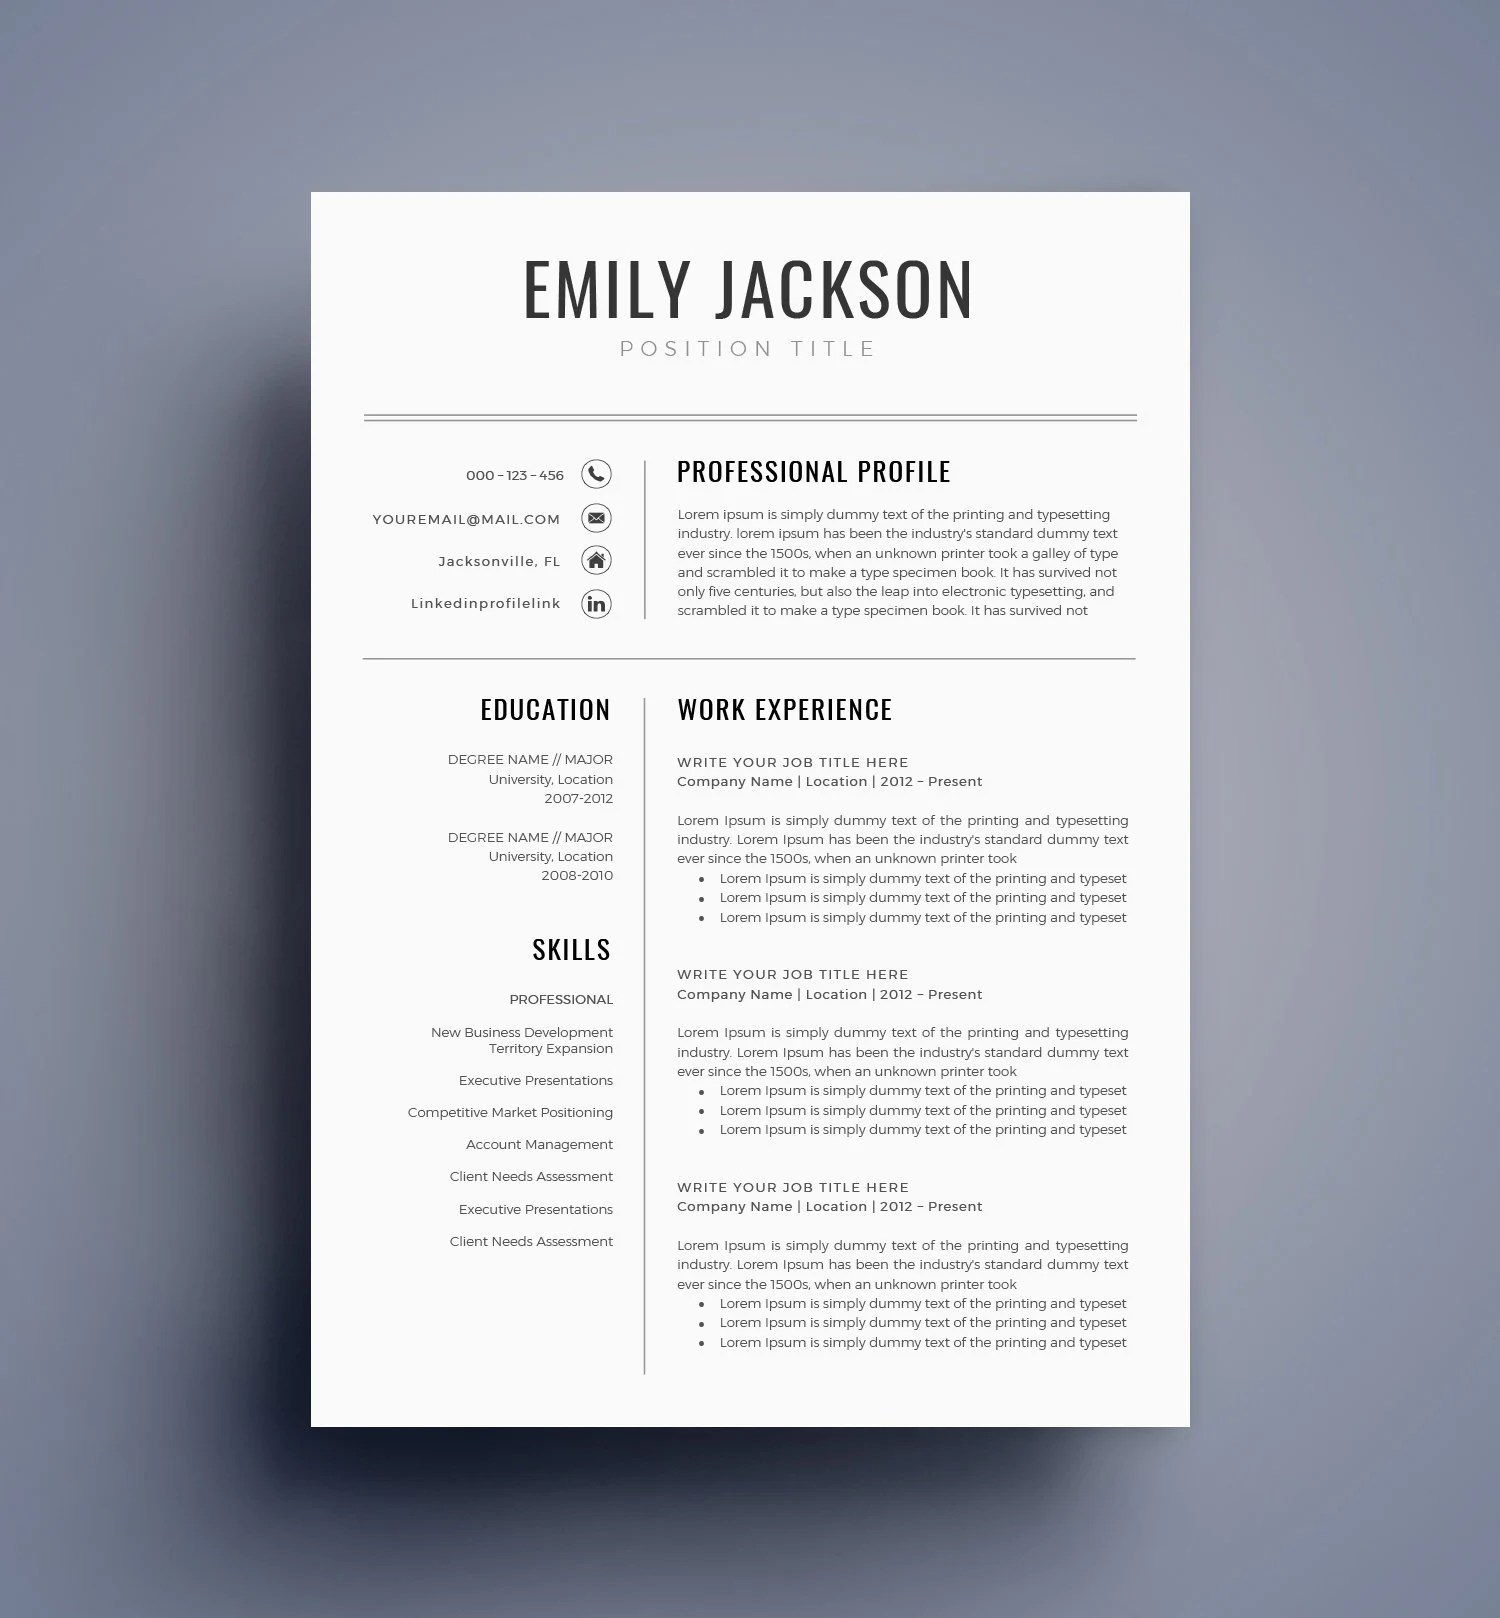 Resume Template / CV Template for MS Word BEST Selling Etsy